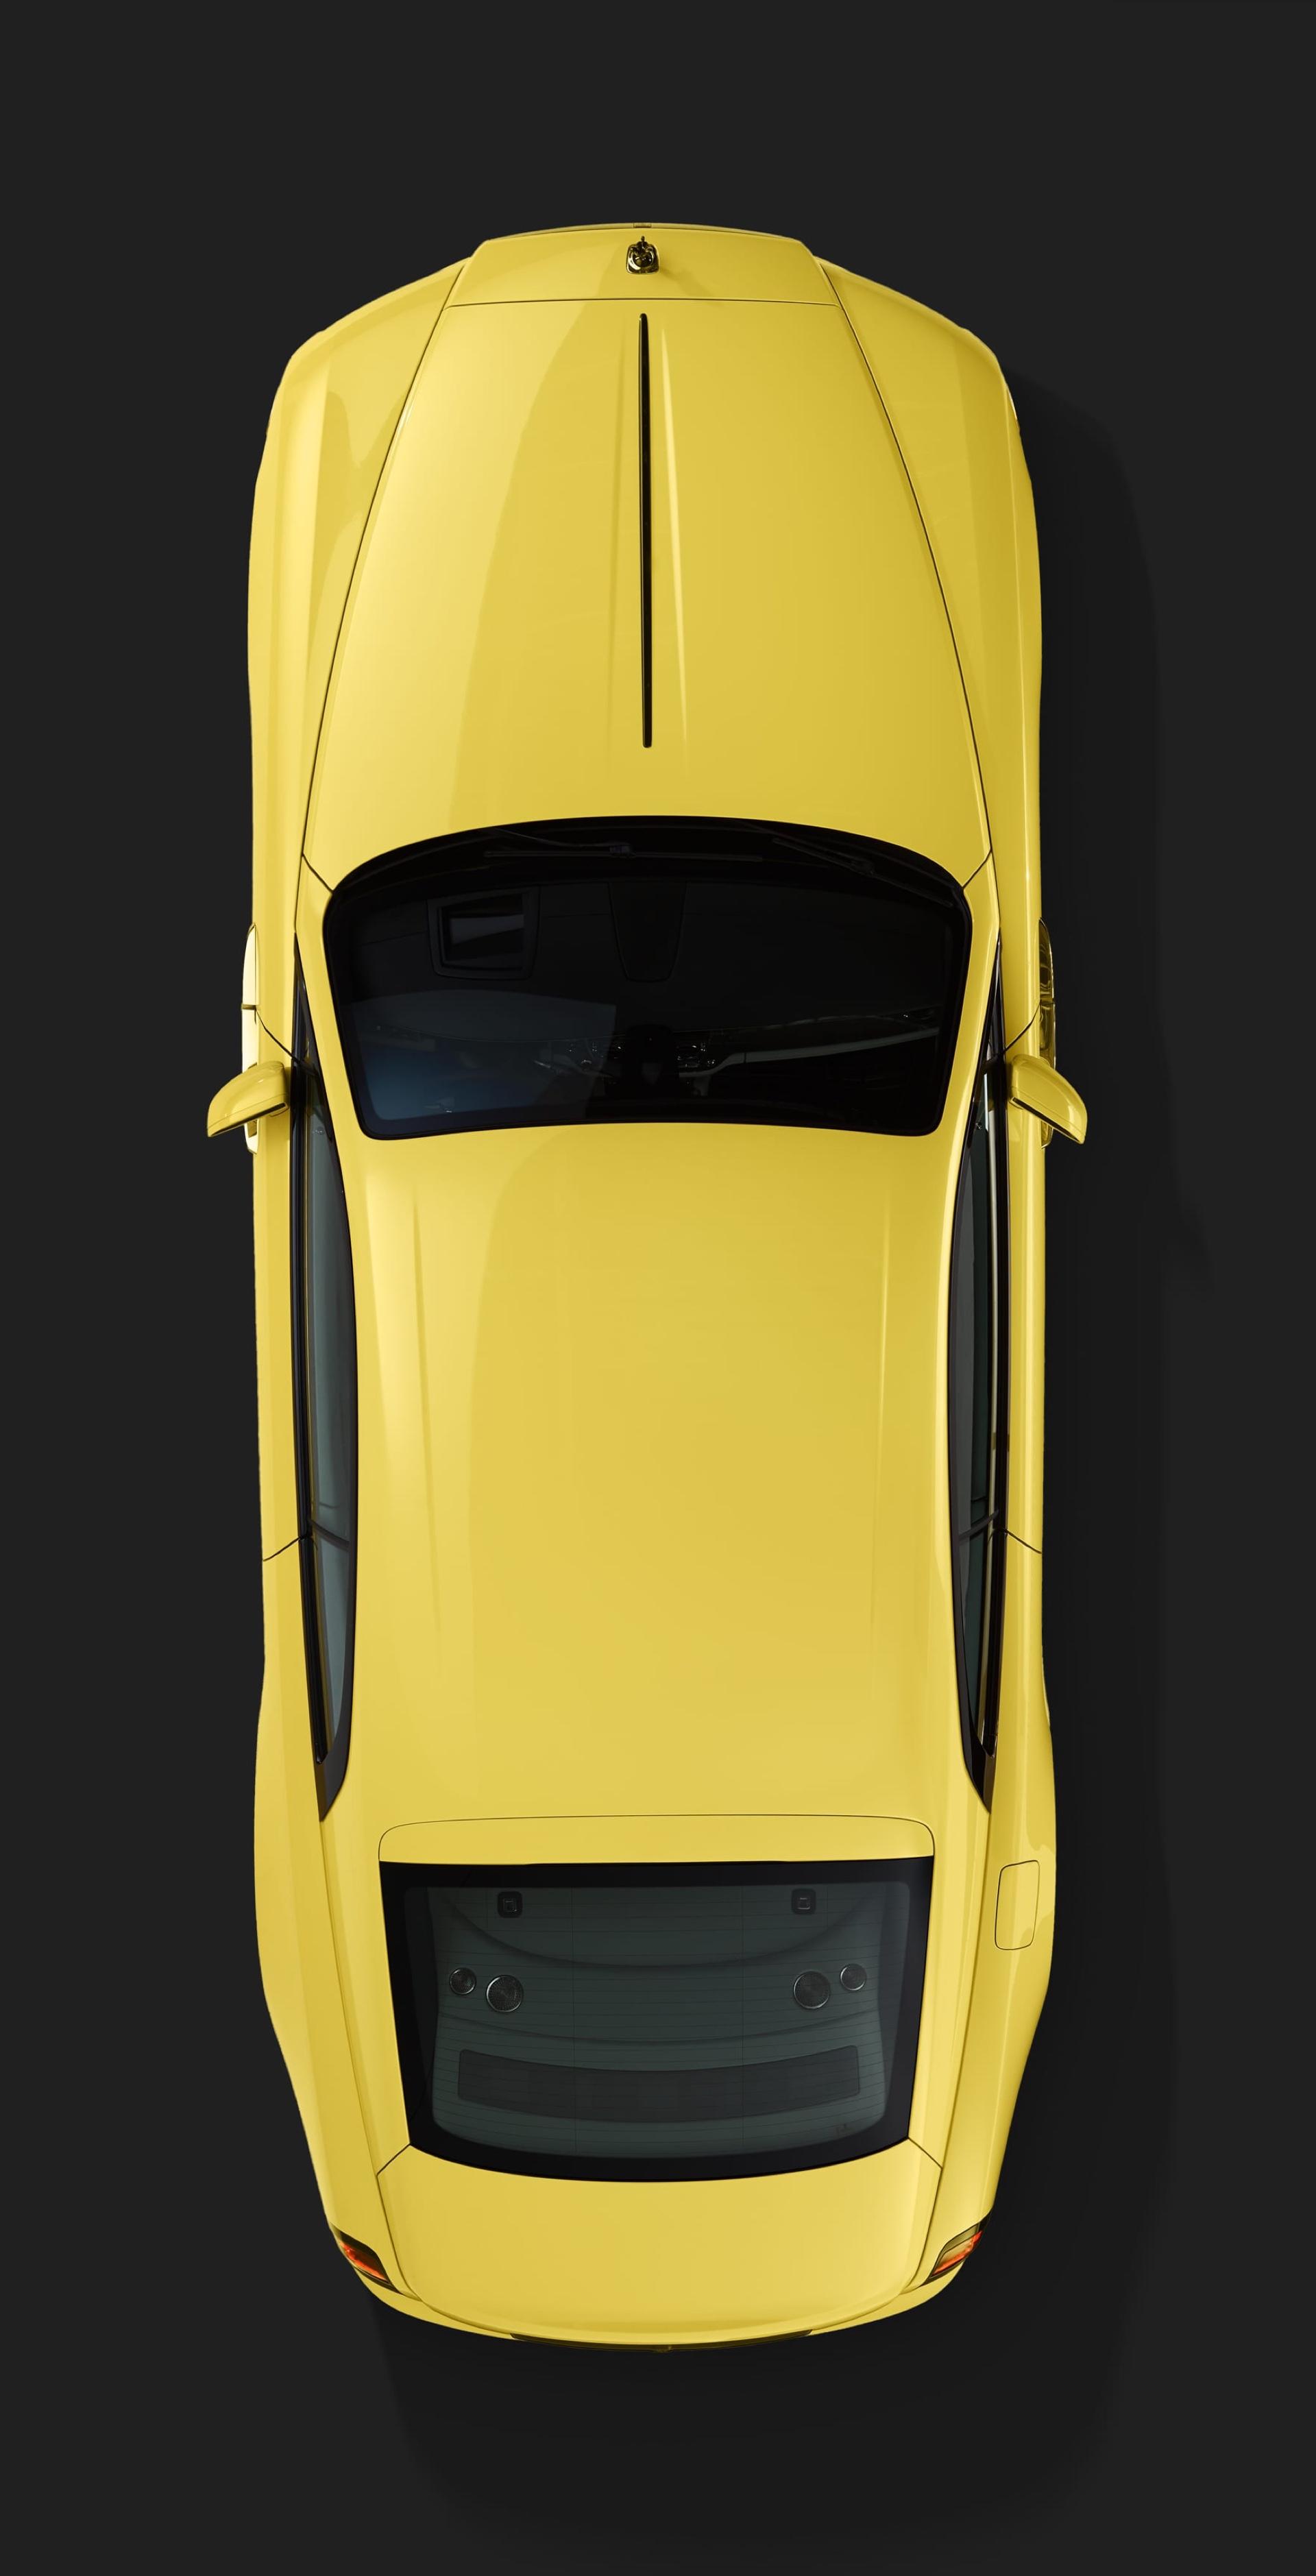 birds-eye shot of the Rolls-Royce Semaphore Yellow Black Badge Wraith revealed at Pebble Beach with the roof up.